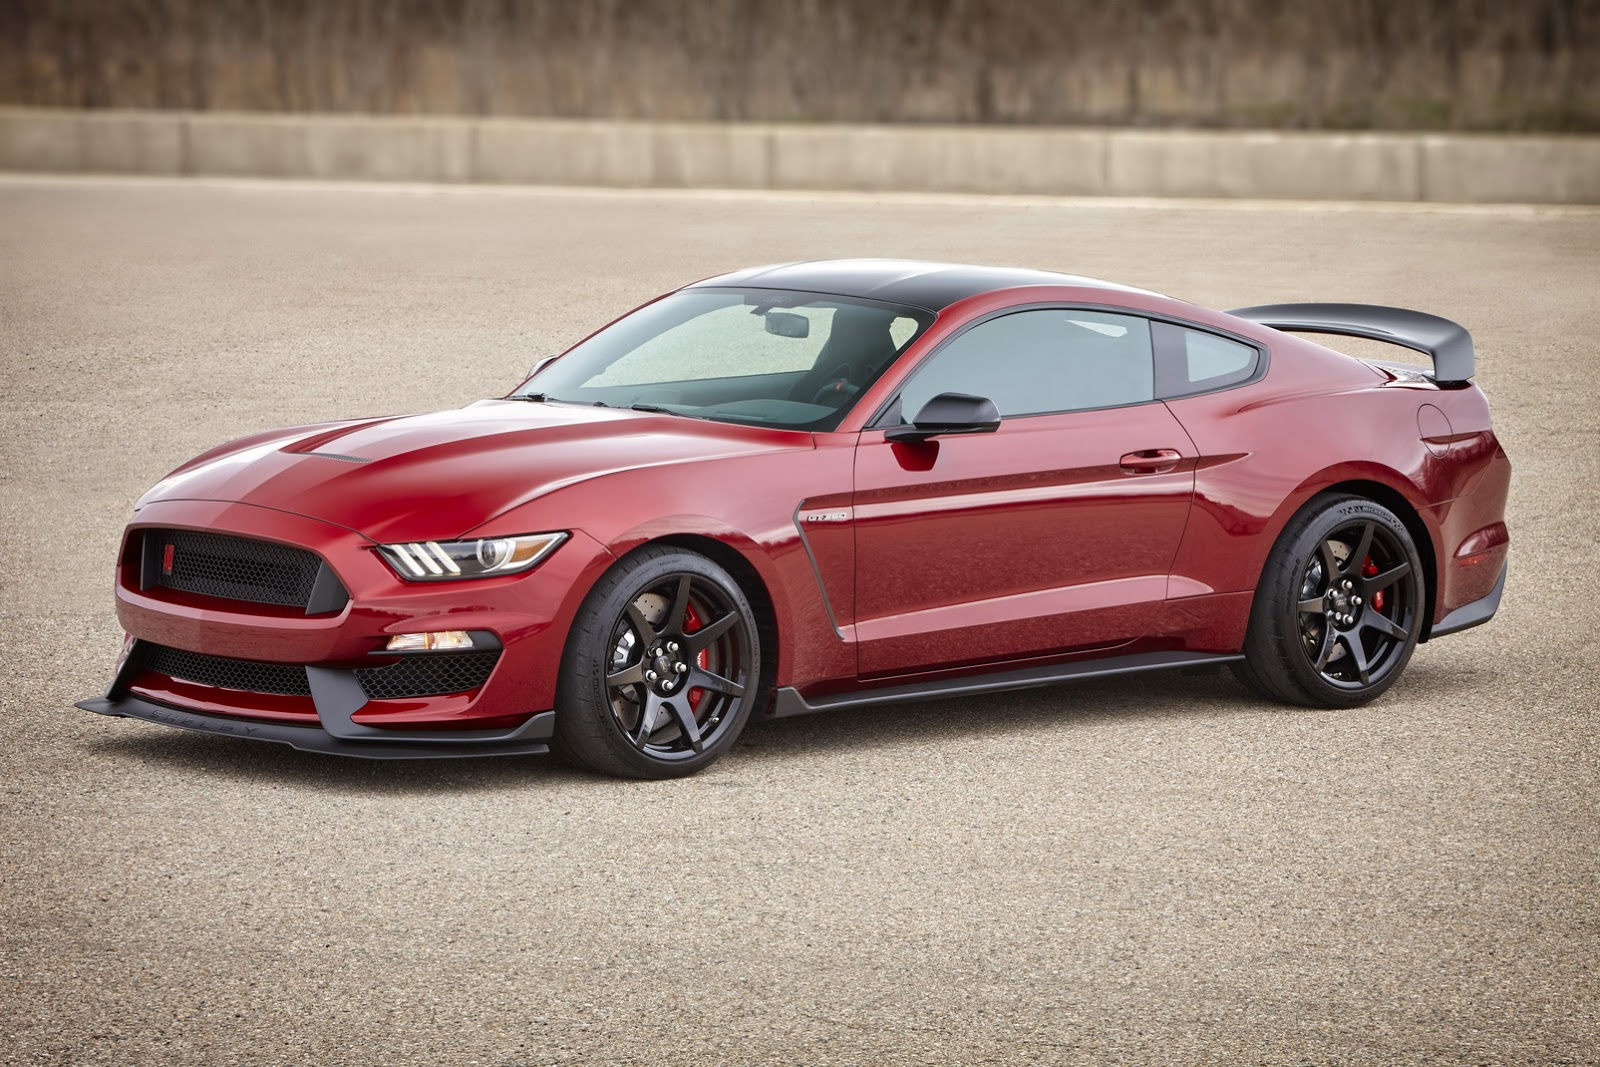 2020 Mustang Shelby GT350: First Pics of New Colors Are Mind-Blowing ...